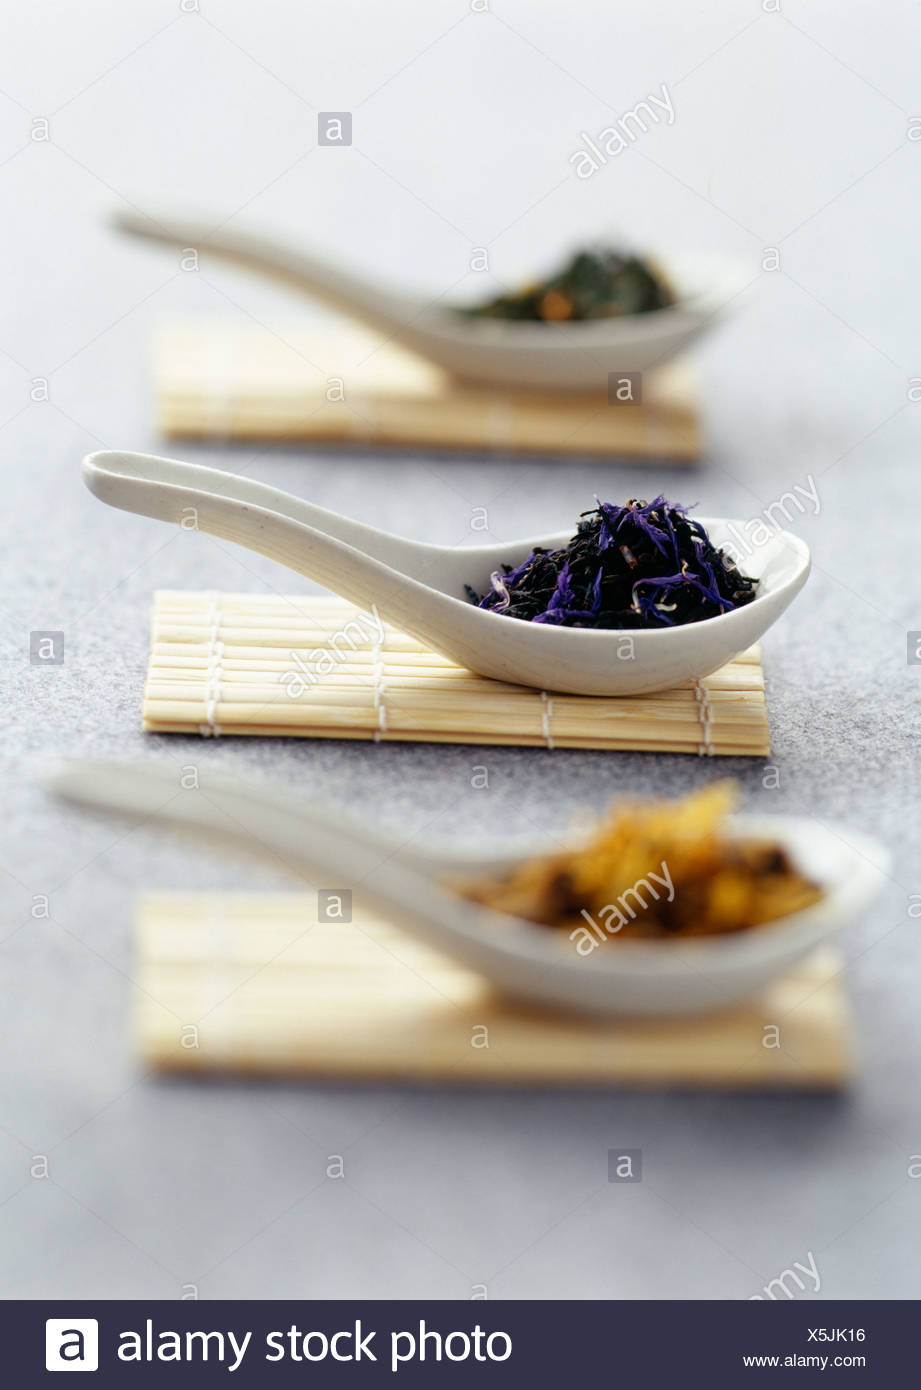 spoonfuls of loose tea - Stock Image